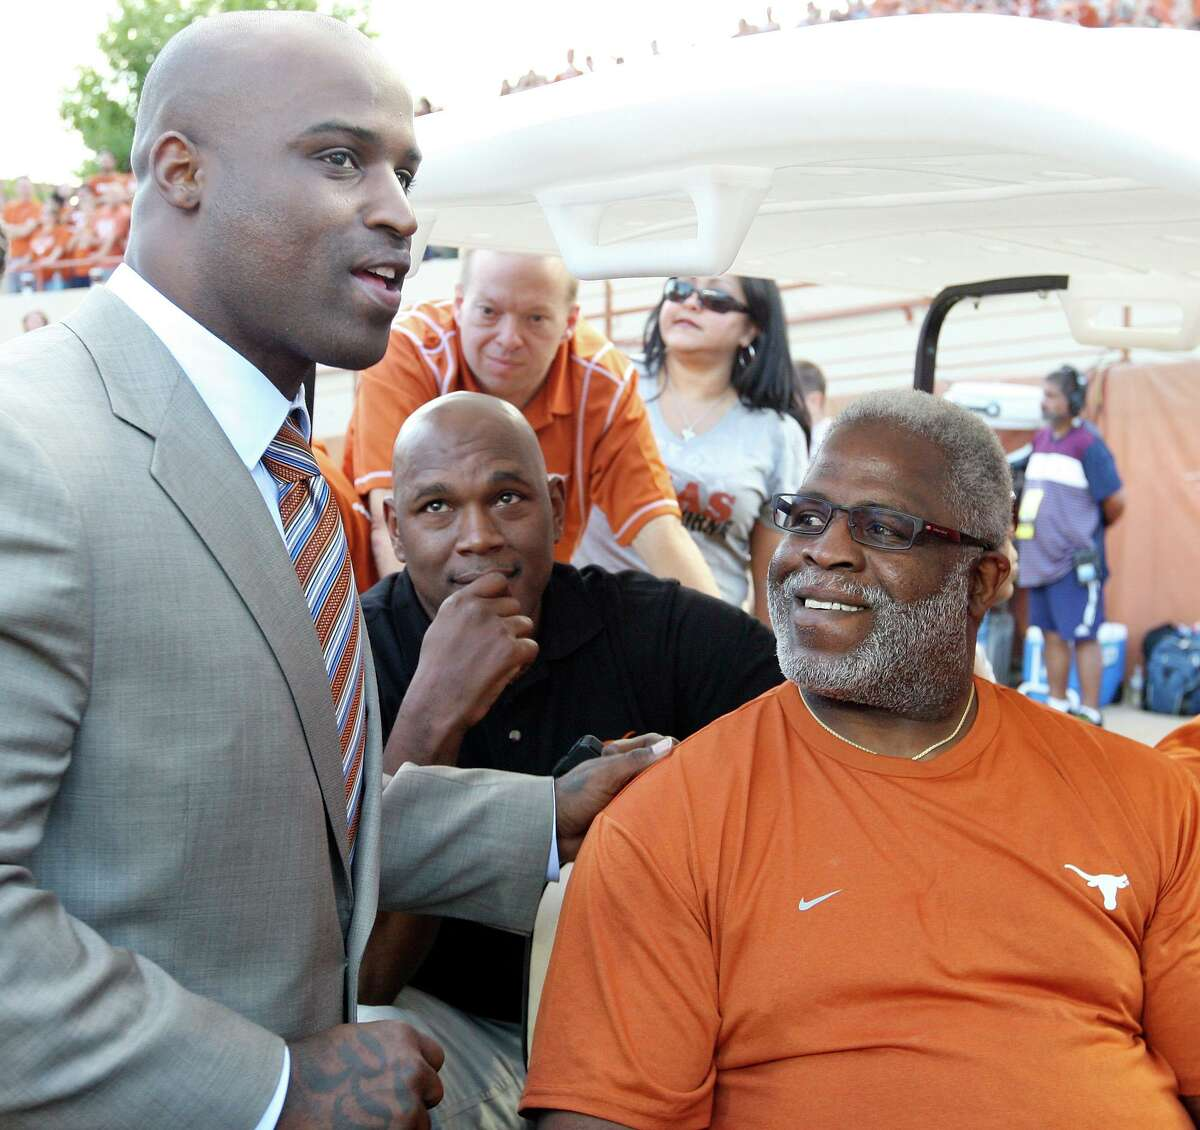 Former Texas Longhorns players Ricky Williams (left) and Earl Campbell talk before the Texas Longhorns-New Mexico Lobos game Saturday Sept. 8, 2012 at Texas Memorial Stadium in Austin, Texas. UT announced on July 13, 2020 that it will rename Joe Jamail Field after the pair of Heisman Trophy winners.